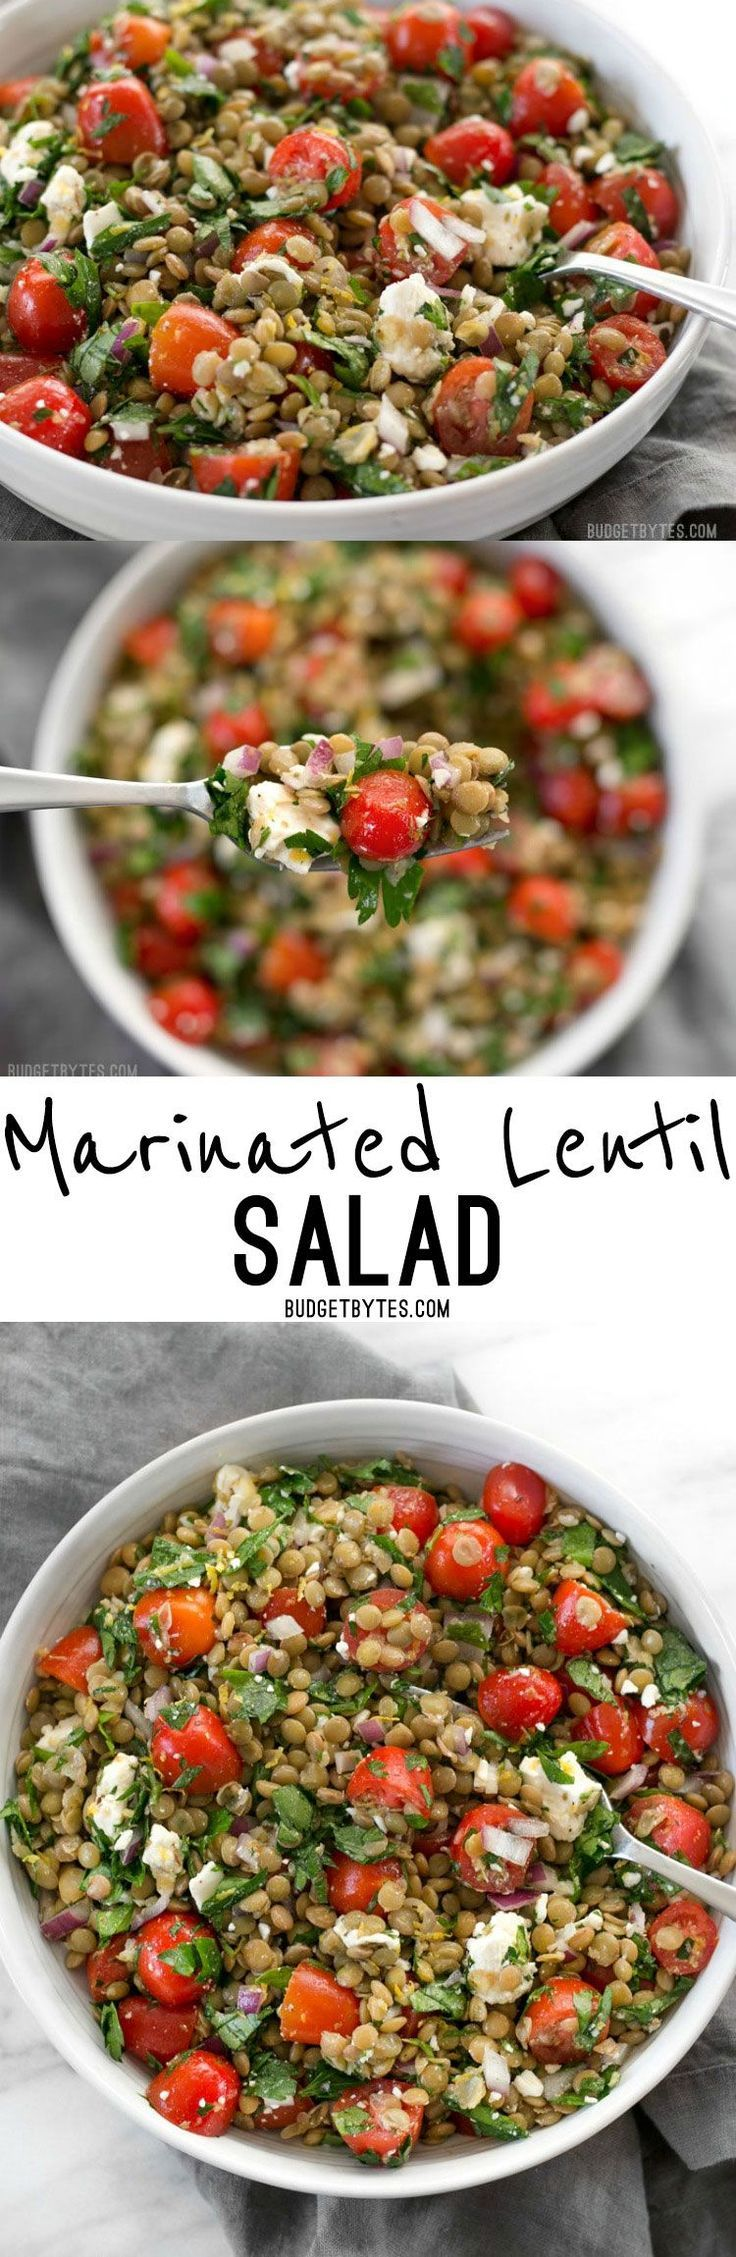 0fdbe7397176890e147c8ae5ae840134 Marinated Lentil Tossed salad is actually brilliant and also savory, and also instilled along with daring tastes li ...